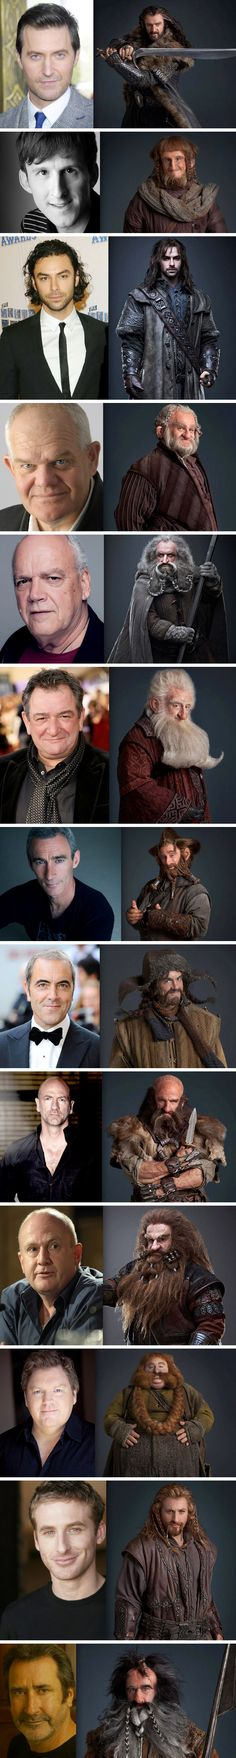 The Hobbit dwarves, pre and post make-up.